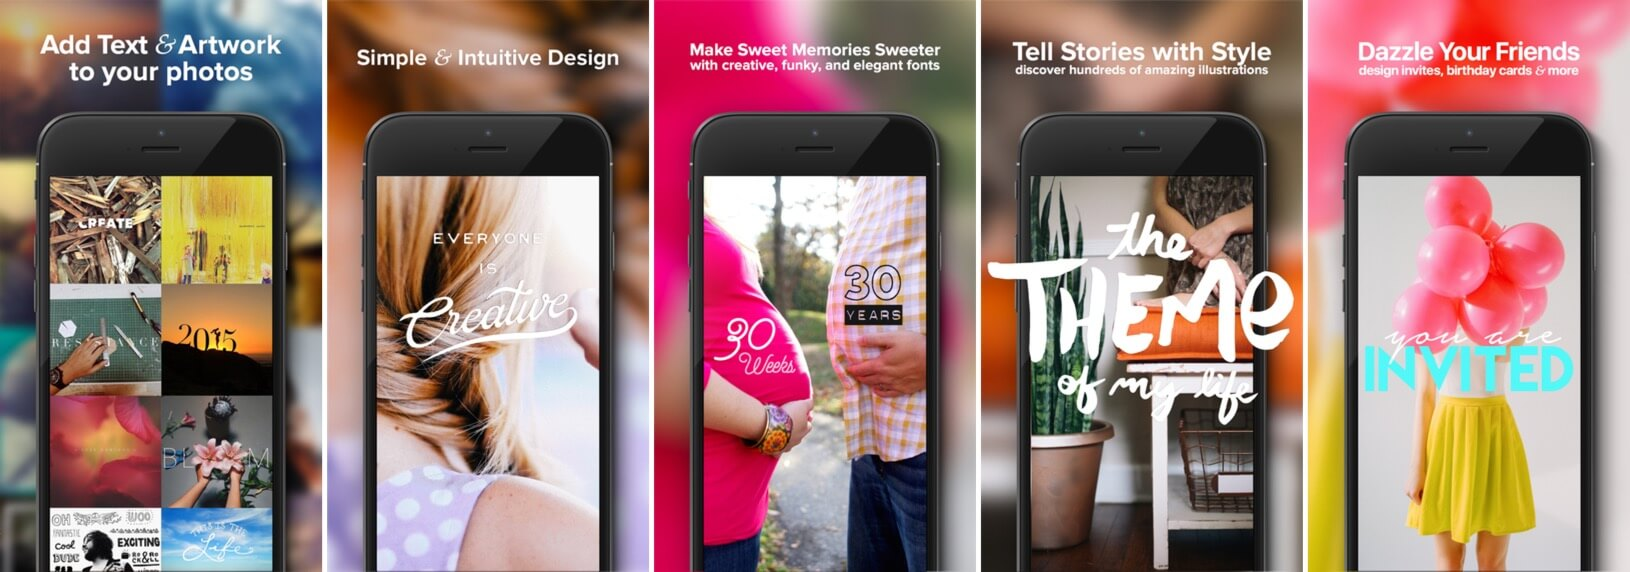 Everything you need to know about app screenshots the over apps first screenshot below shows a collection of examples of artwork you can create with the app this quickly explains the apps benefits to the ccuart Image collections